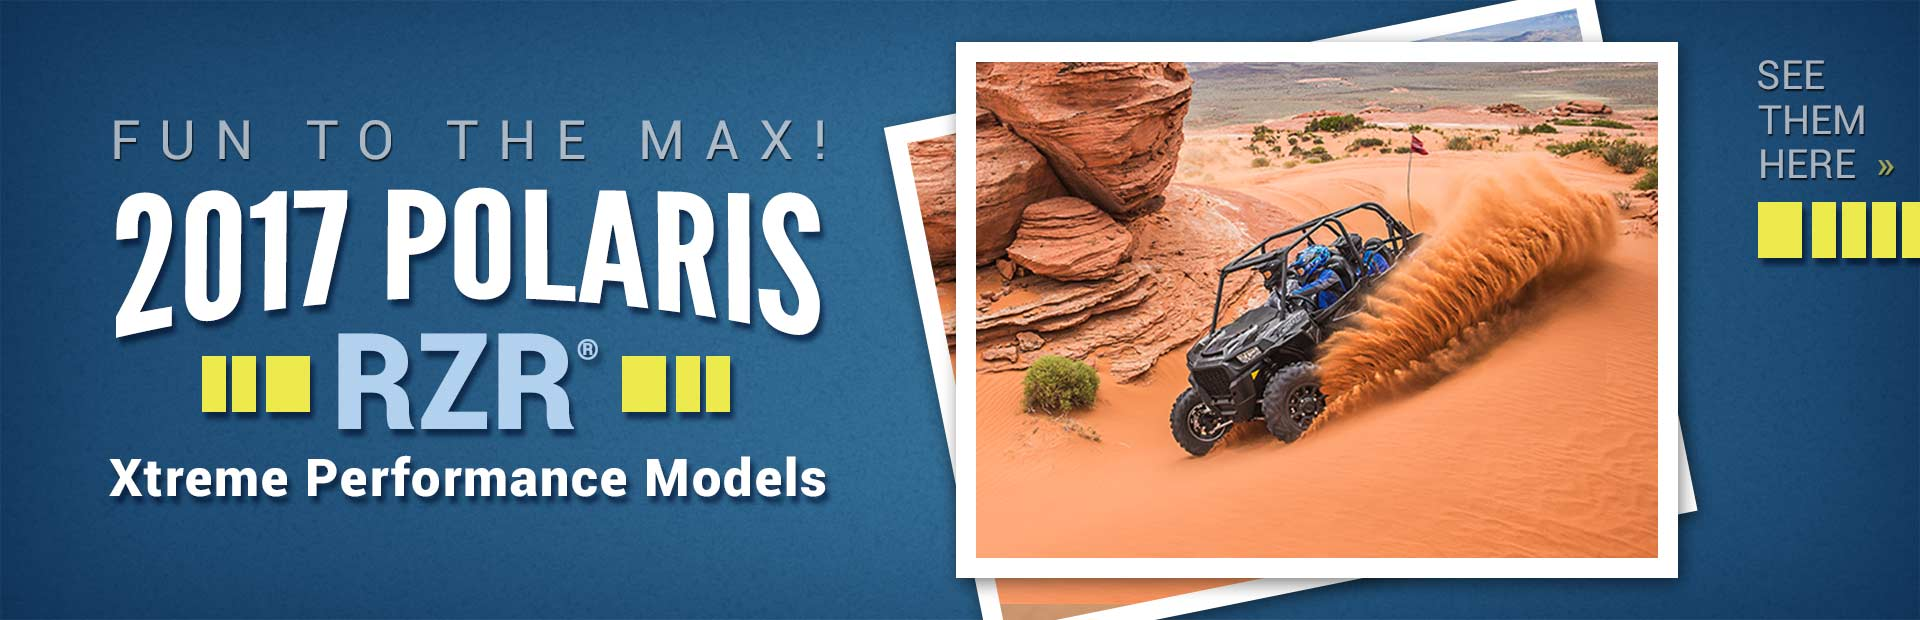 2017 Polaris RZR® Xtreme Performance Models: Click here to view our selection.